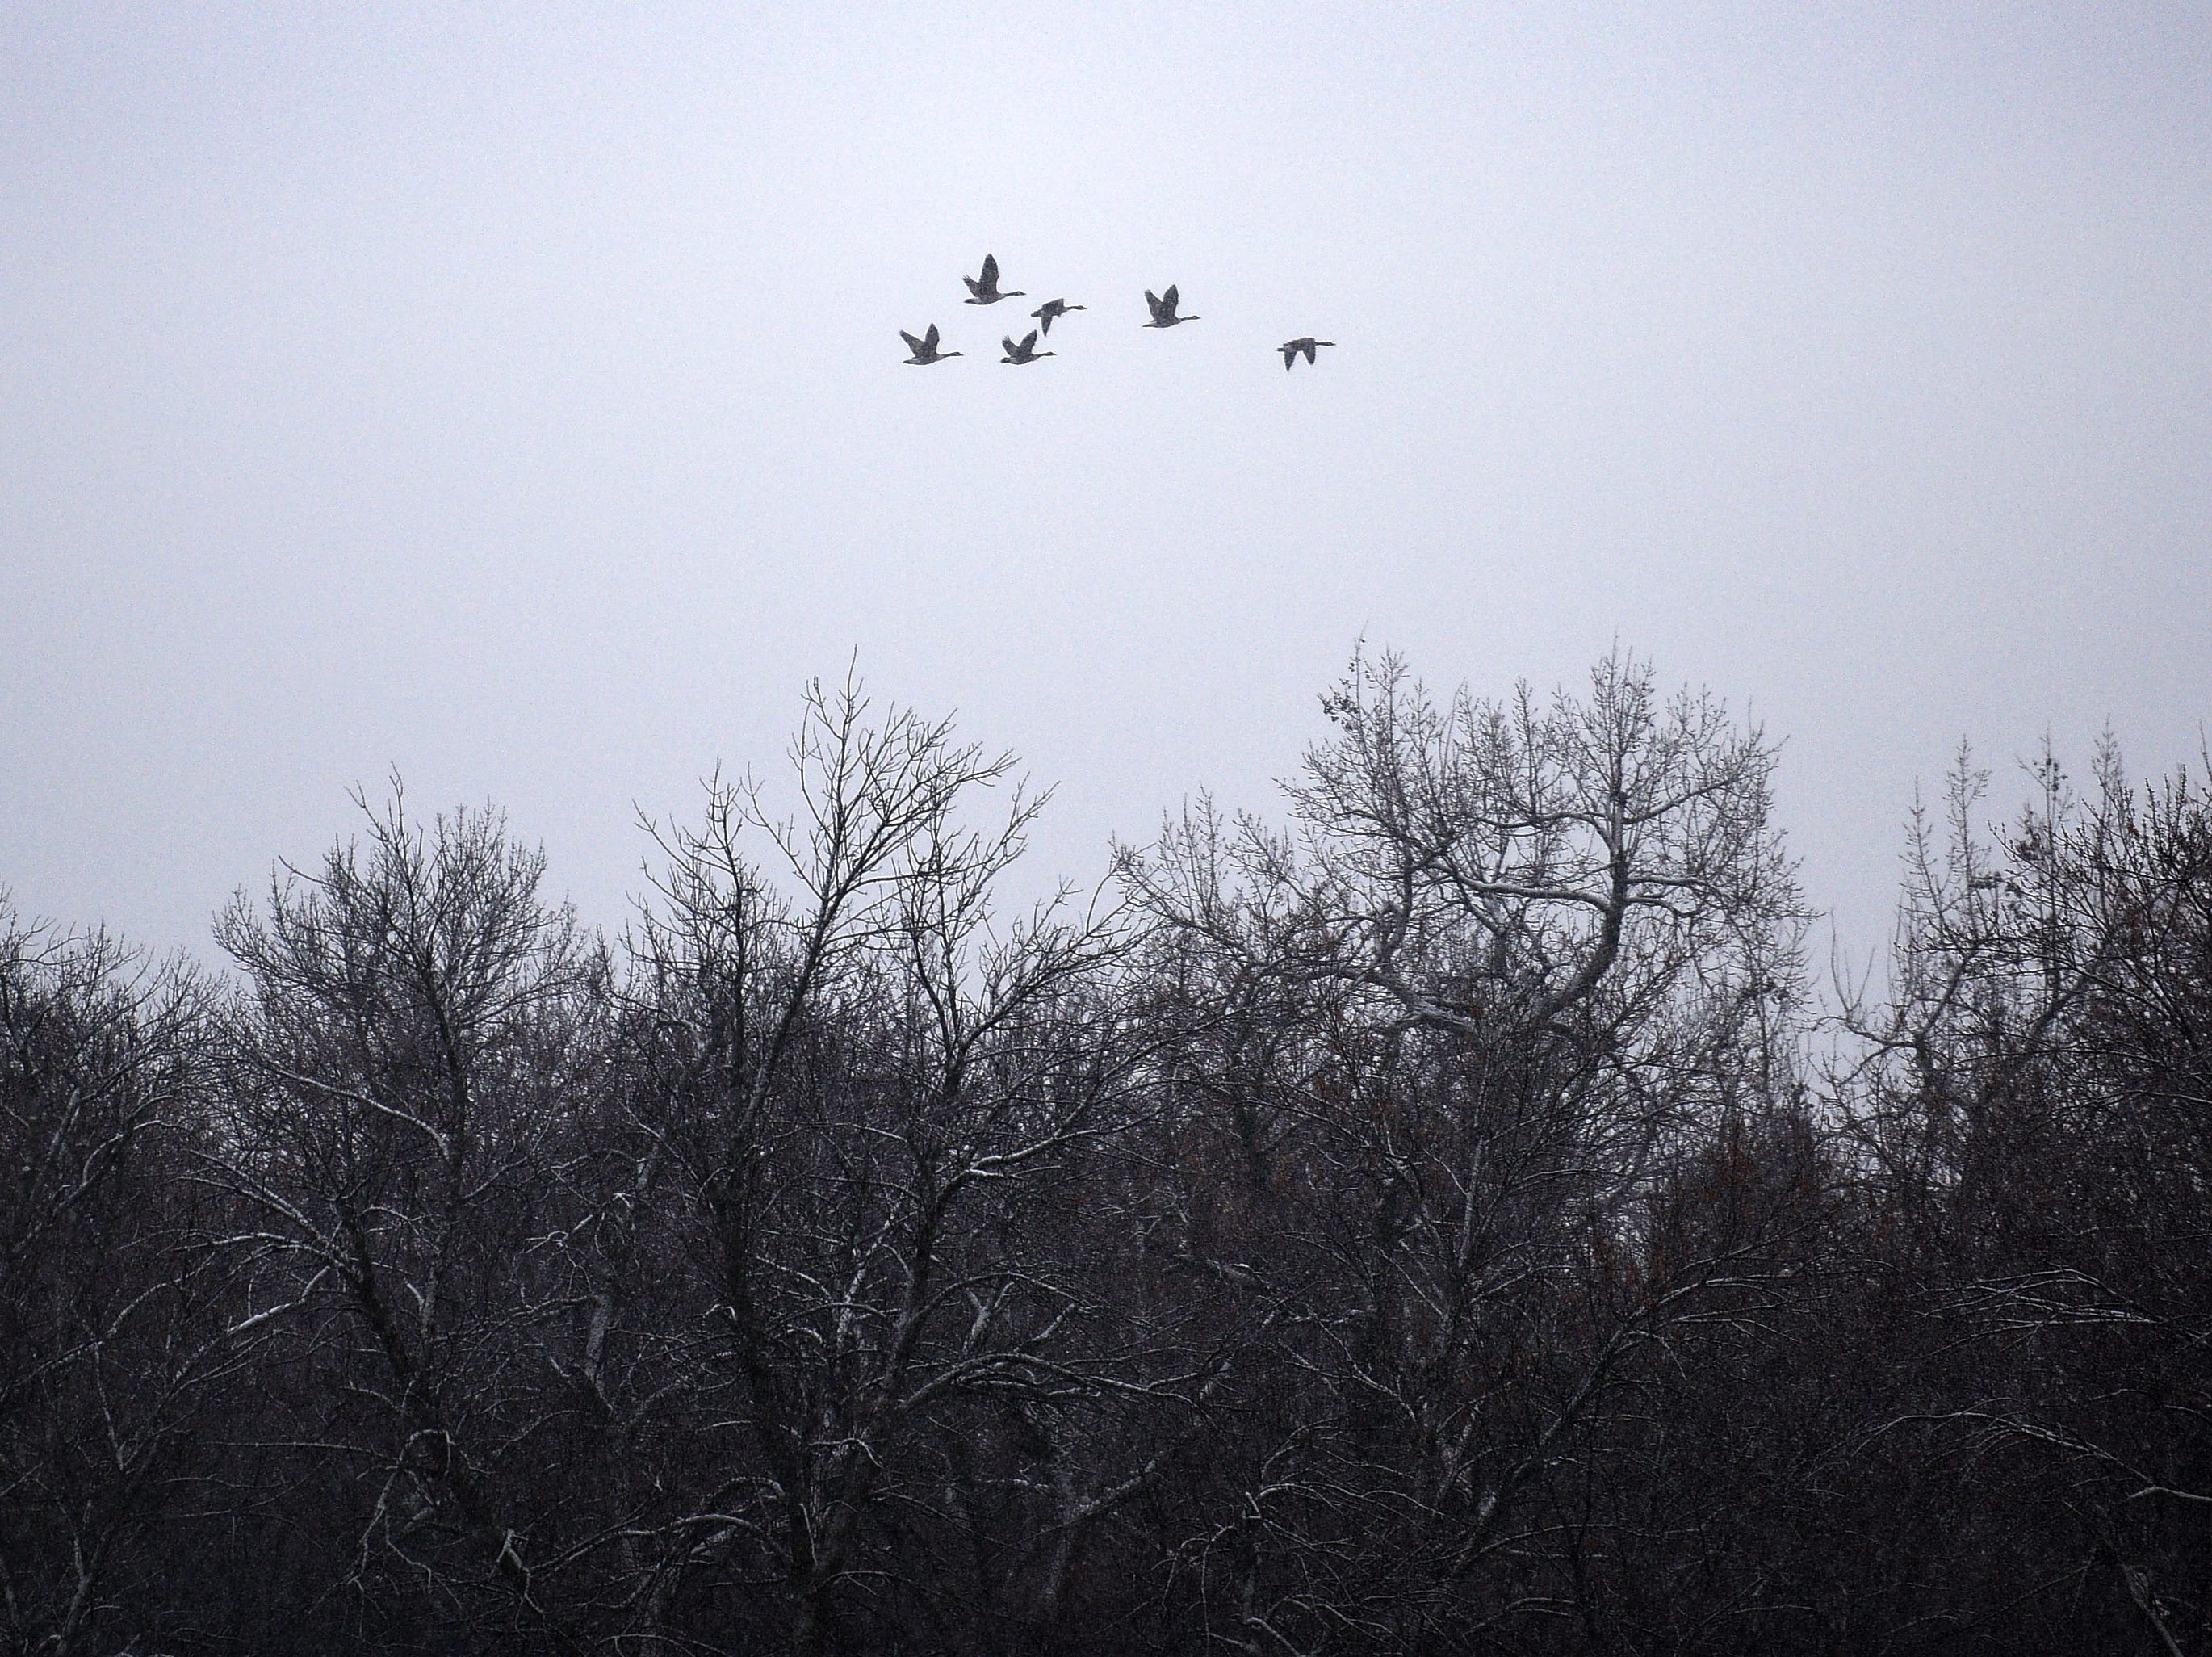 Geese fly through the snow over Sertoma Park Thursday, Dec. 27, in Sioux Falls. More snow is expected to arrive in South Dakota on Thursday and Friday as a winter storm moves through the area.